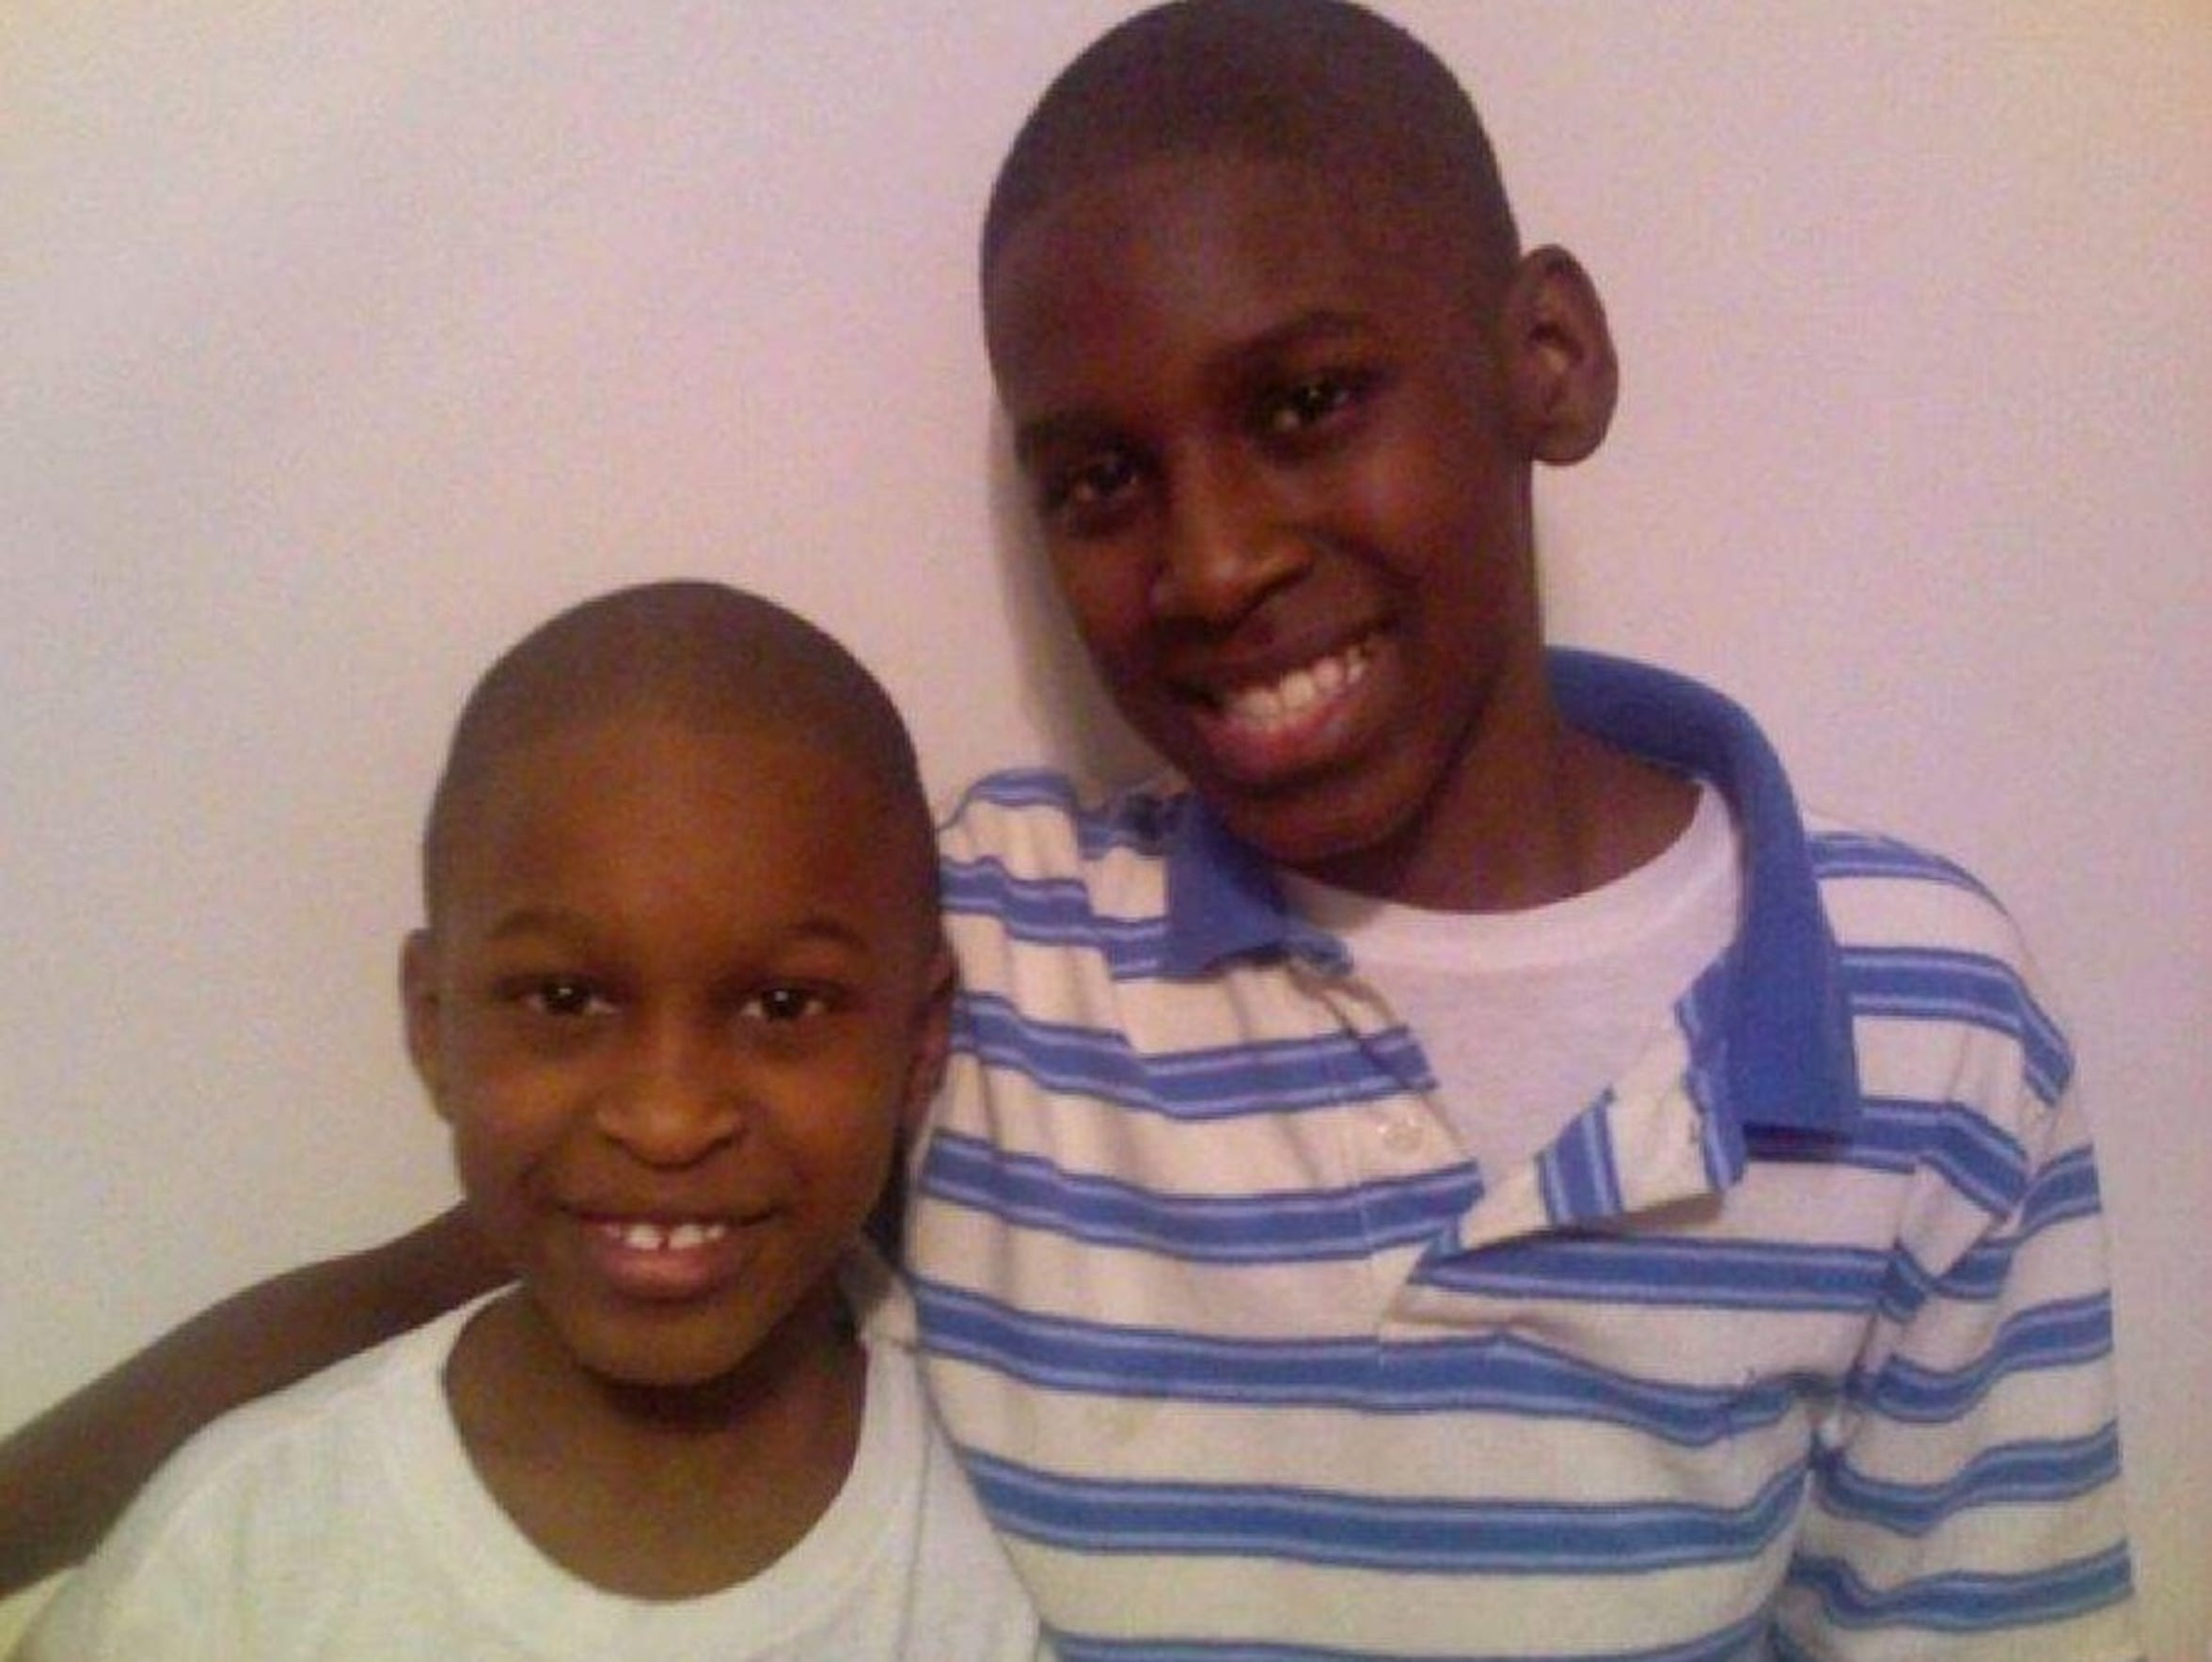 Jahlil and Na-Quan Lewis, shown here in an older photo,